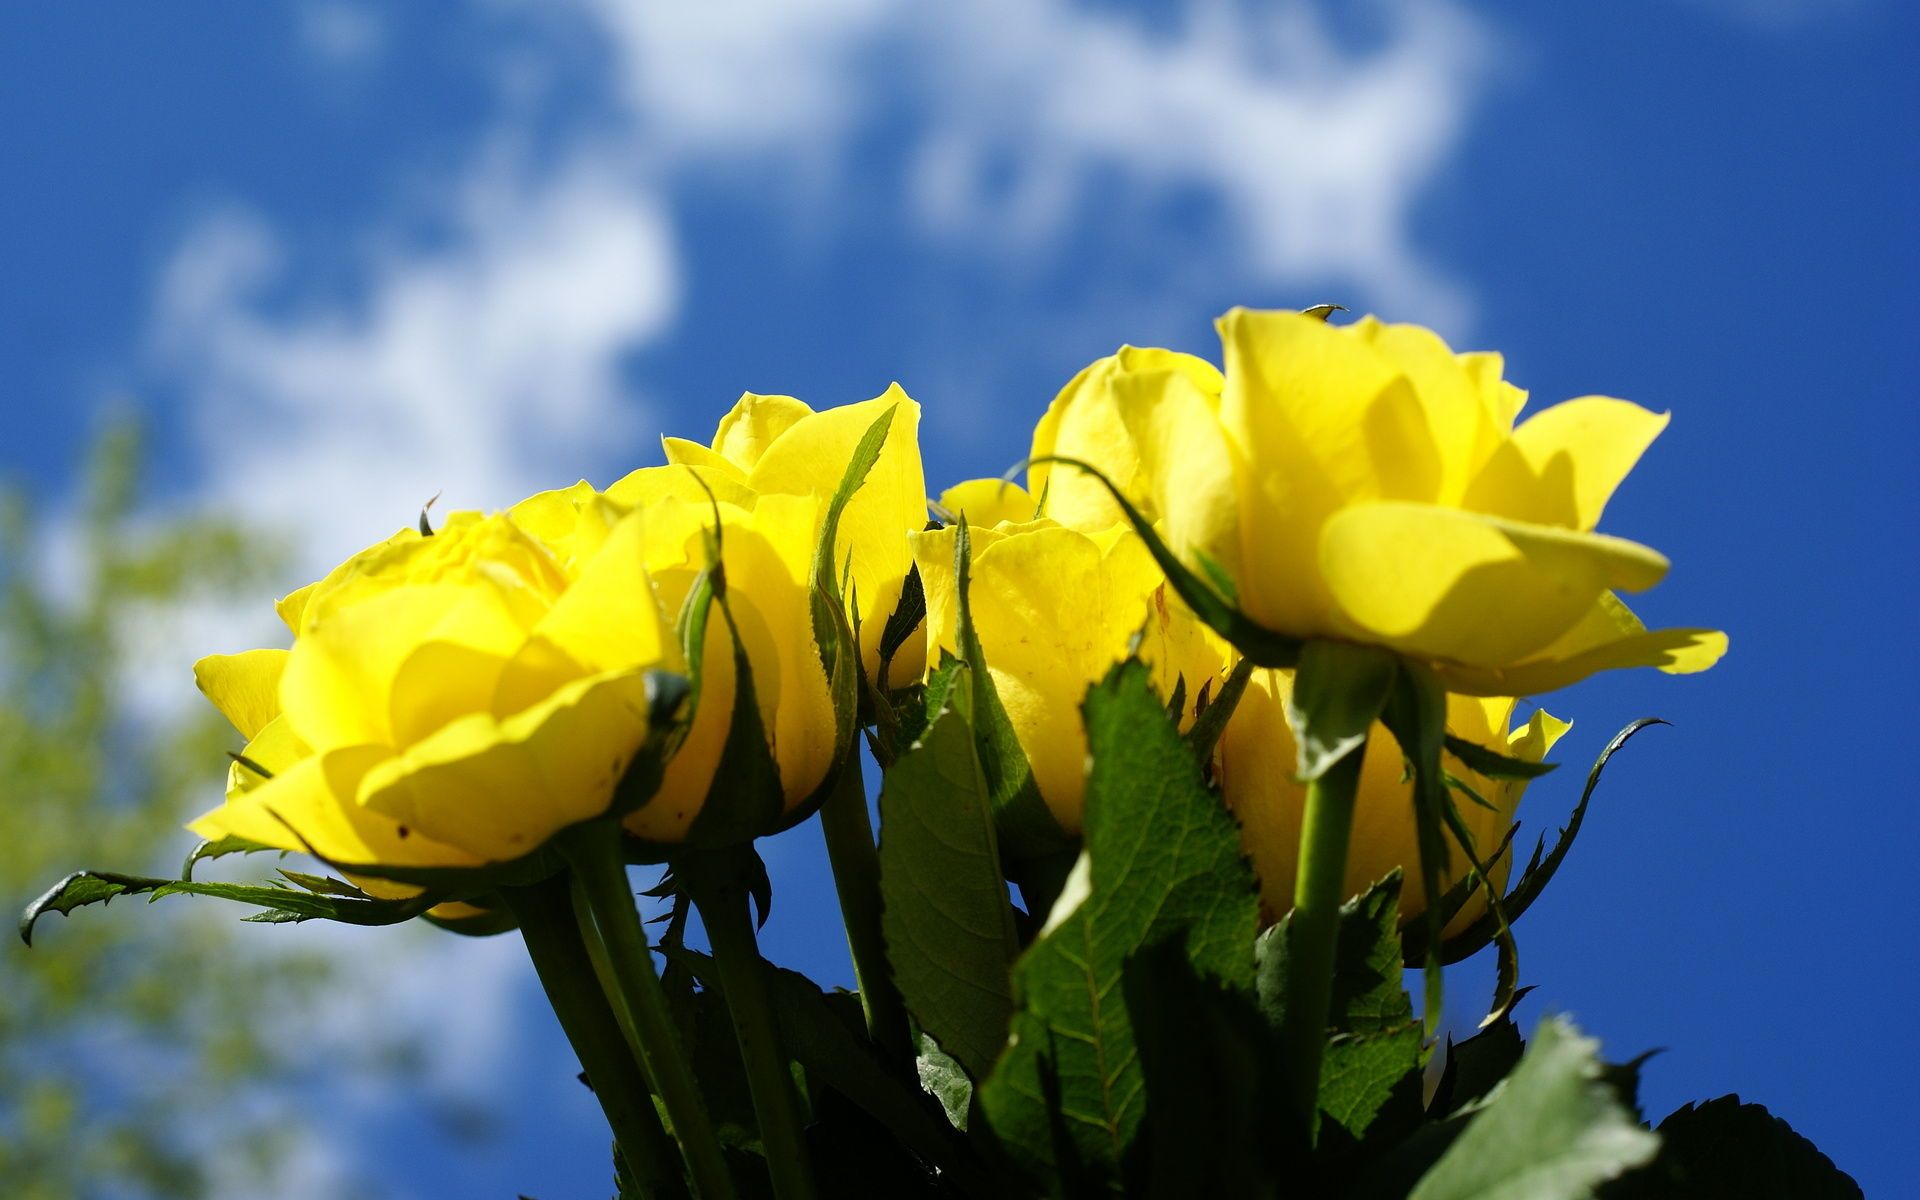 Hd Yellow Rose Wallpaper, Sky, Flower, Yellow, Beautiful,3d - Yellow Rose For Friends Happy Rose Day , HD Wallpaper & Backgrounds